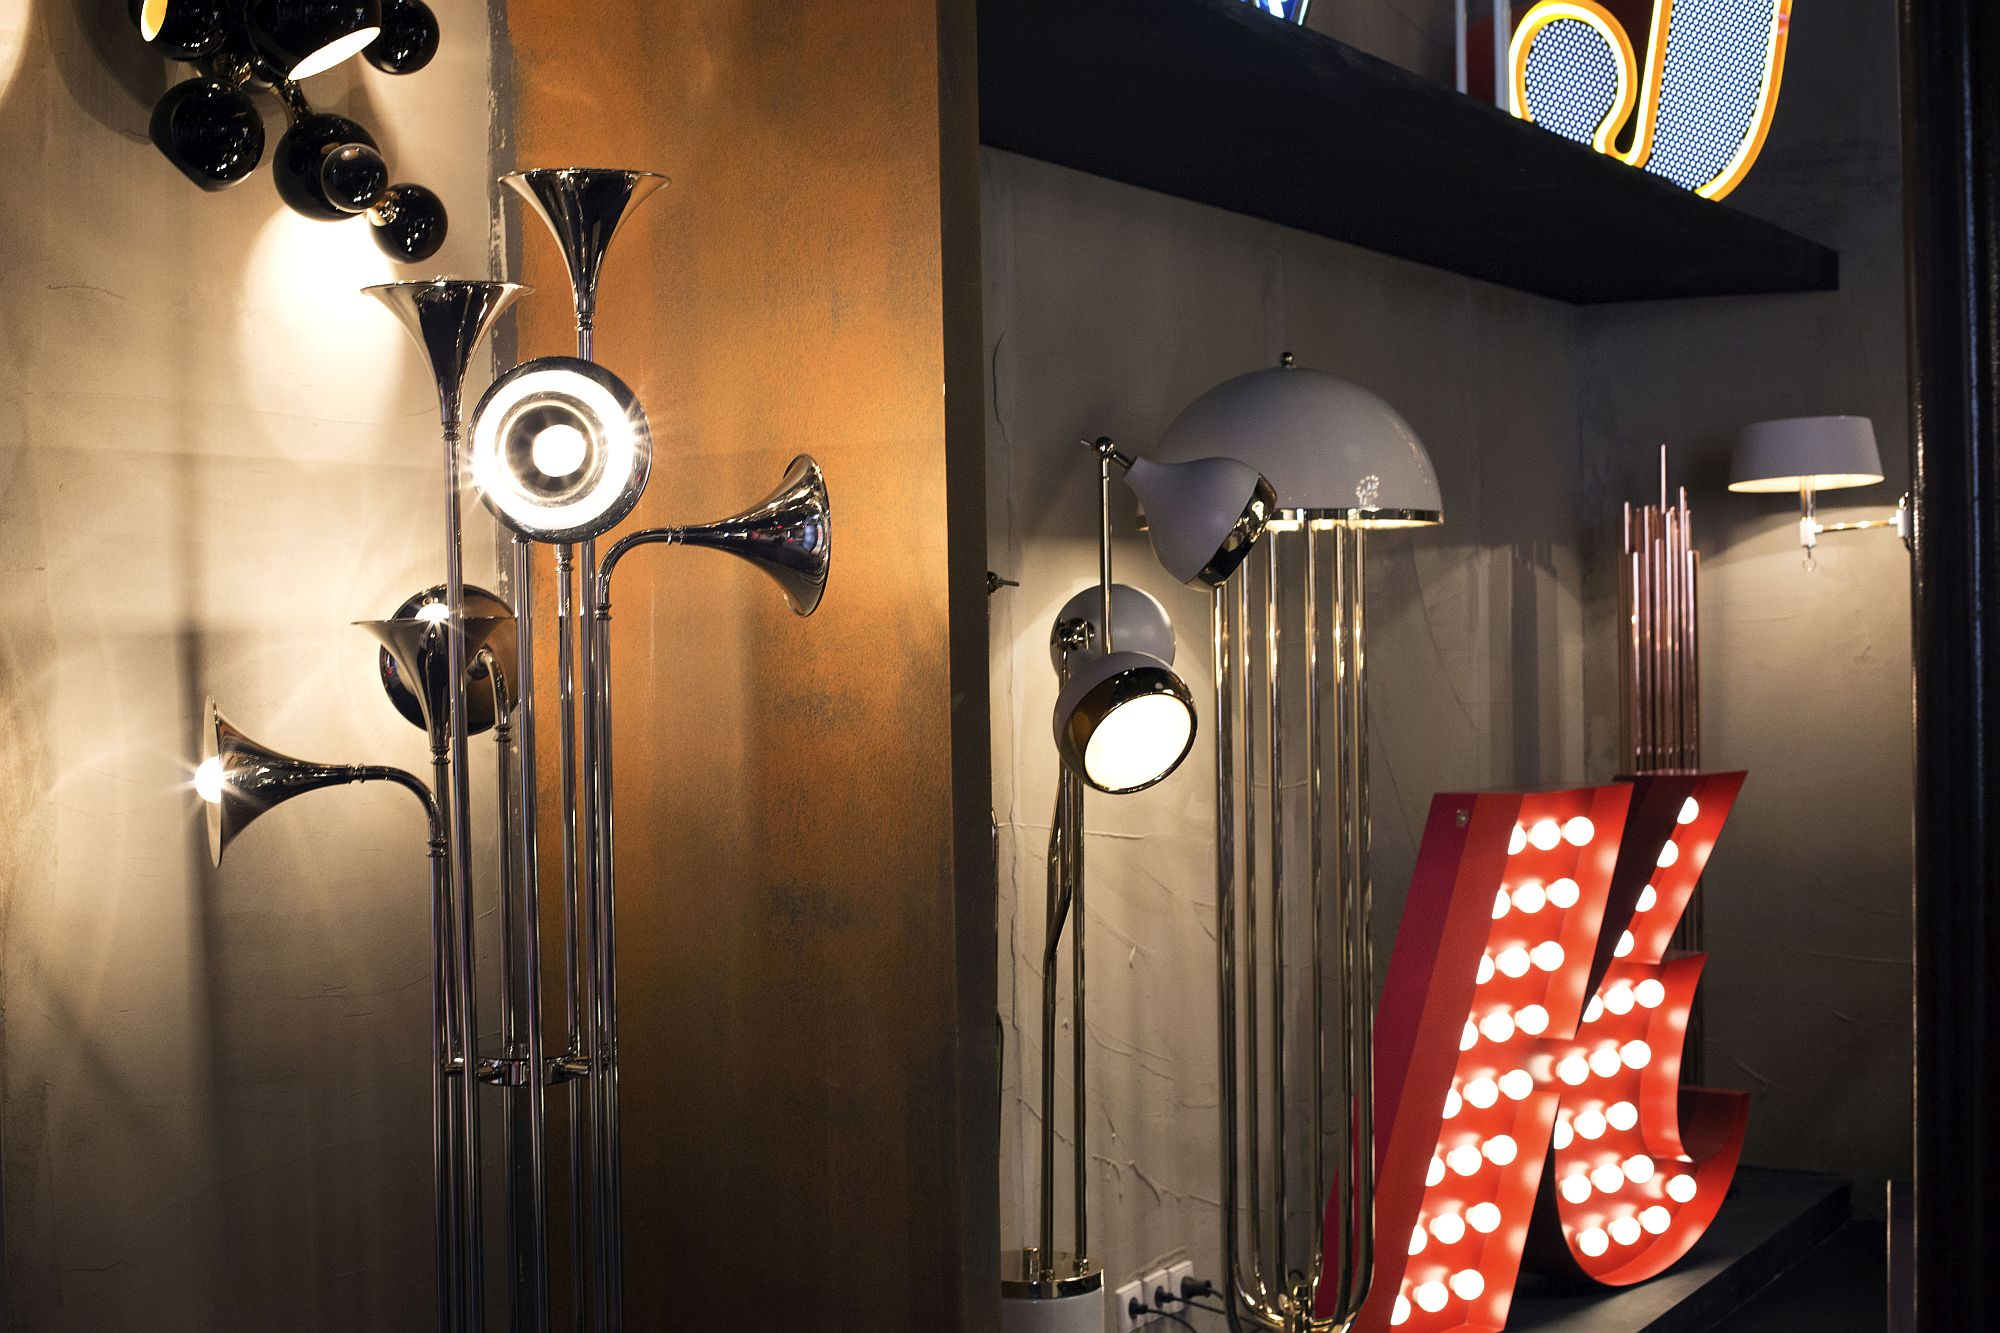 Unique-and-sparling-lighting-fixture-from-DelightFULL